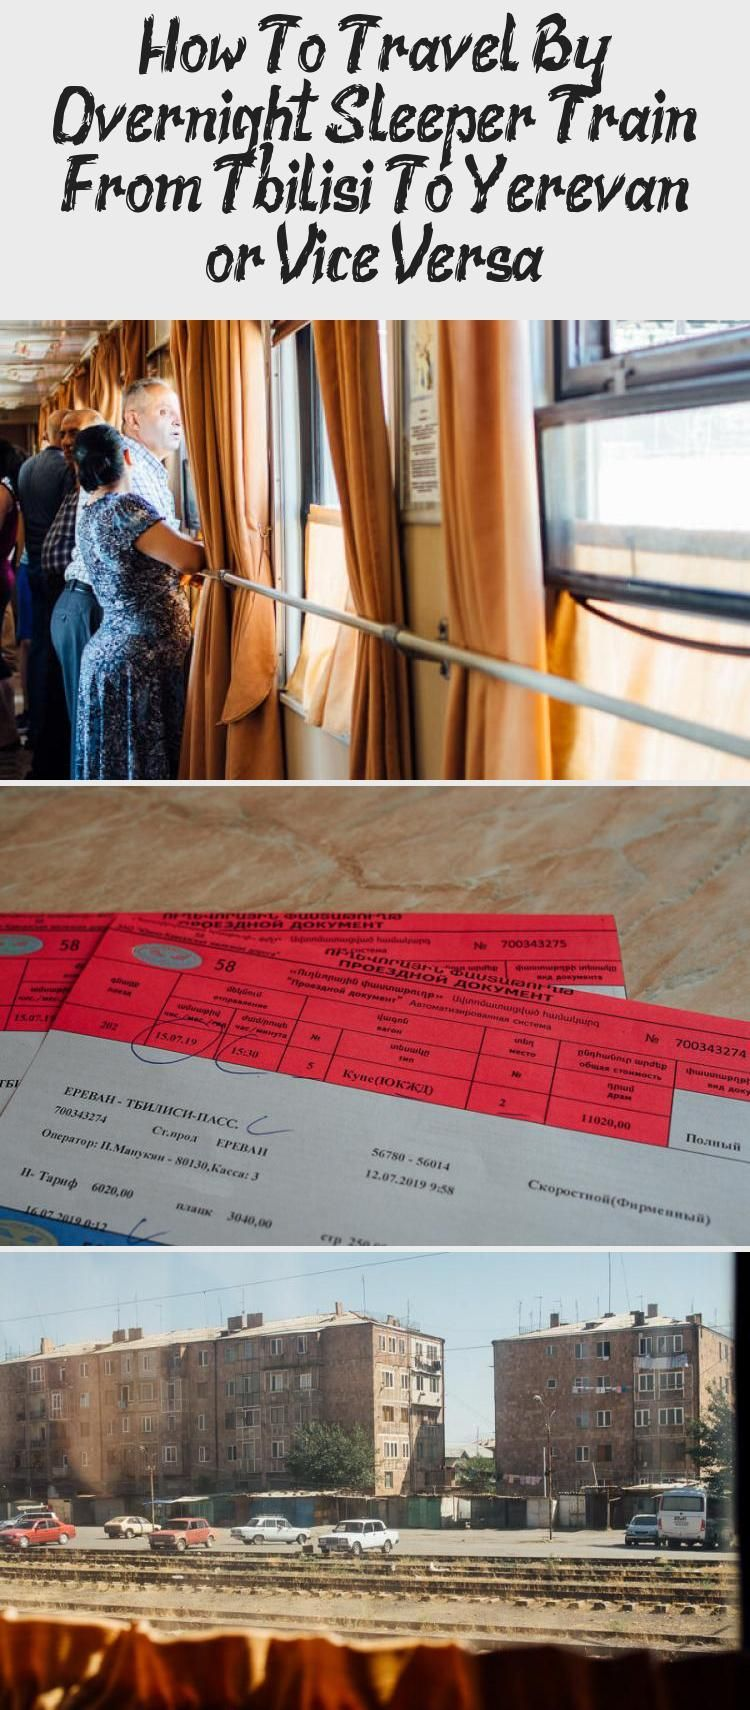 How To Travel By Overnight Sleeper Train From Tbilisi To Yerevan Or Vice Versa Train Travel Travel Train